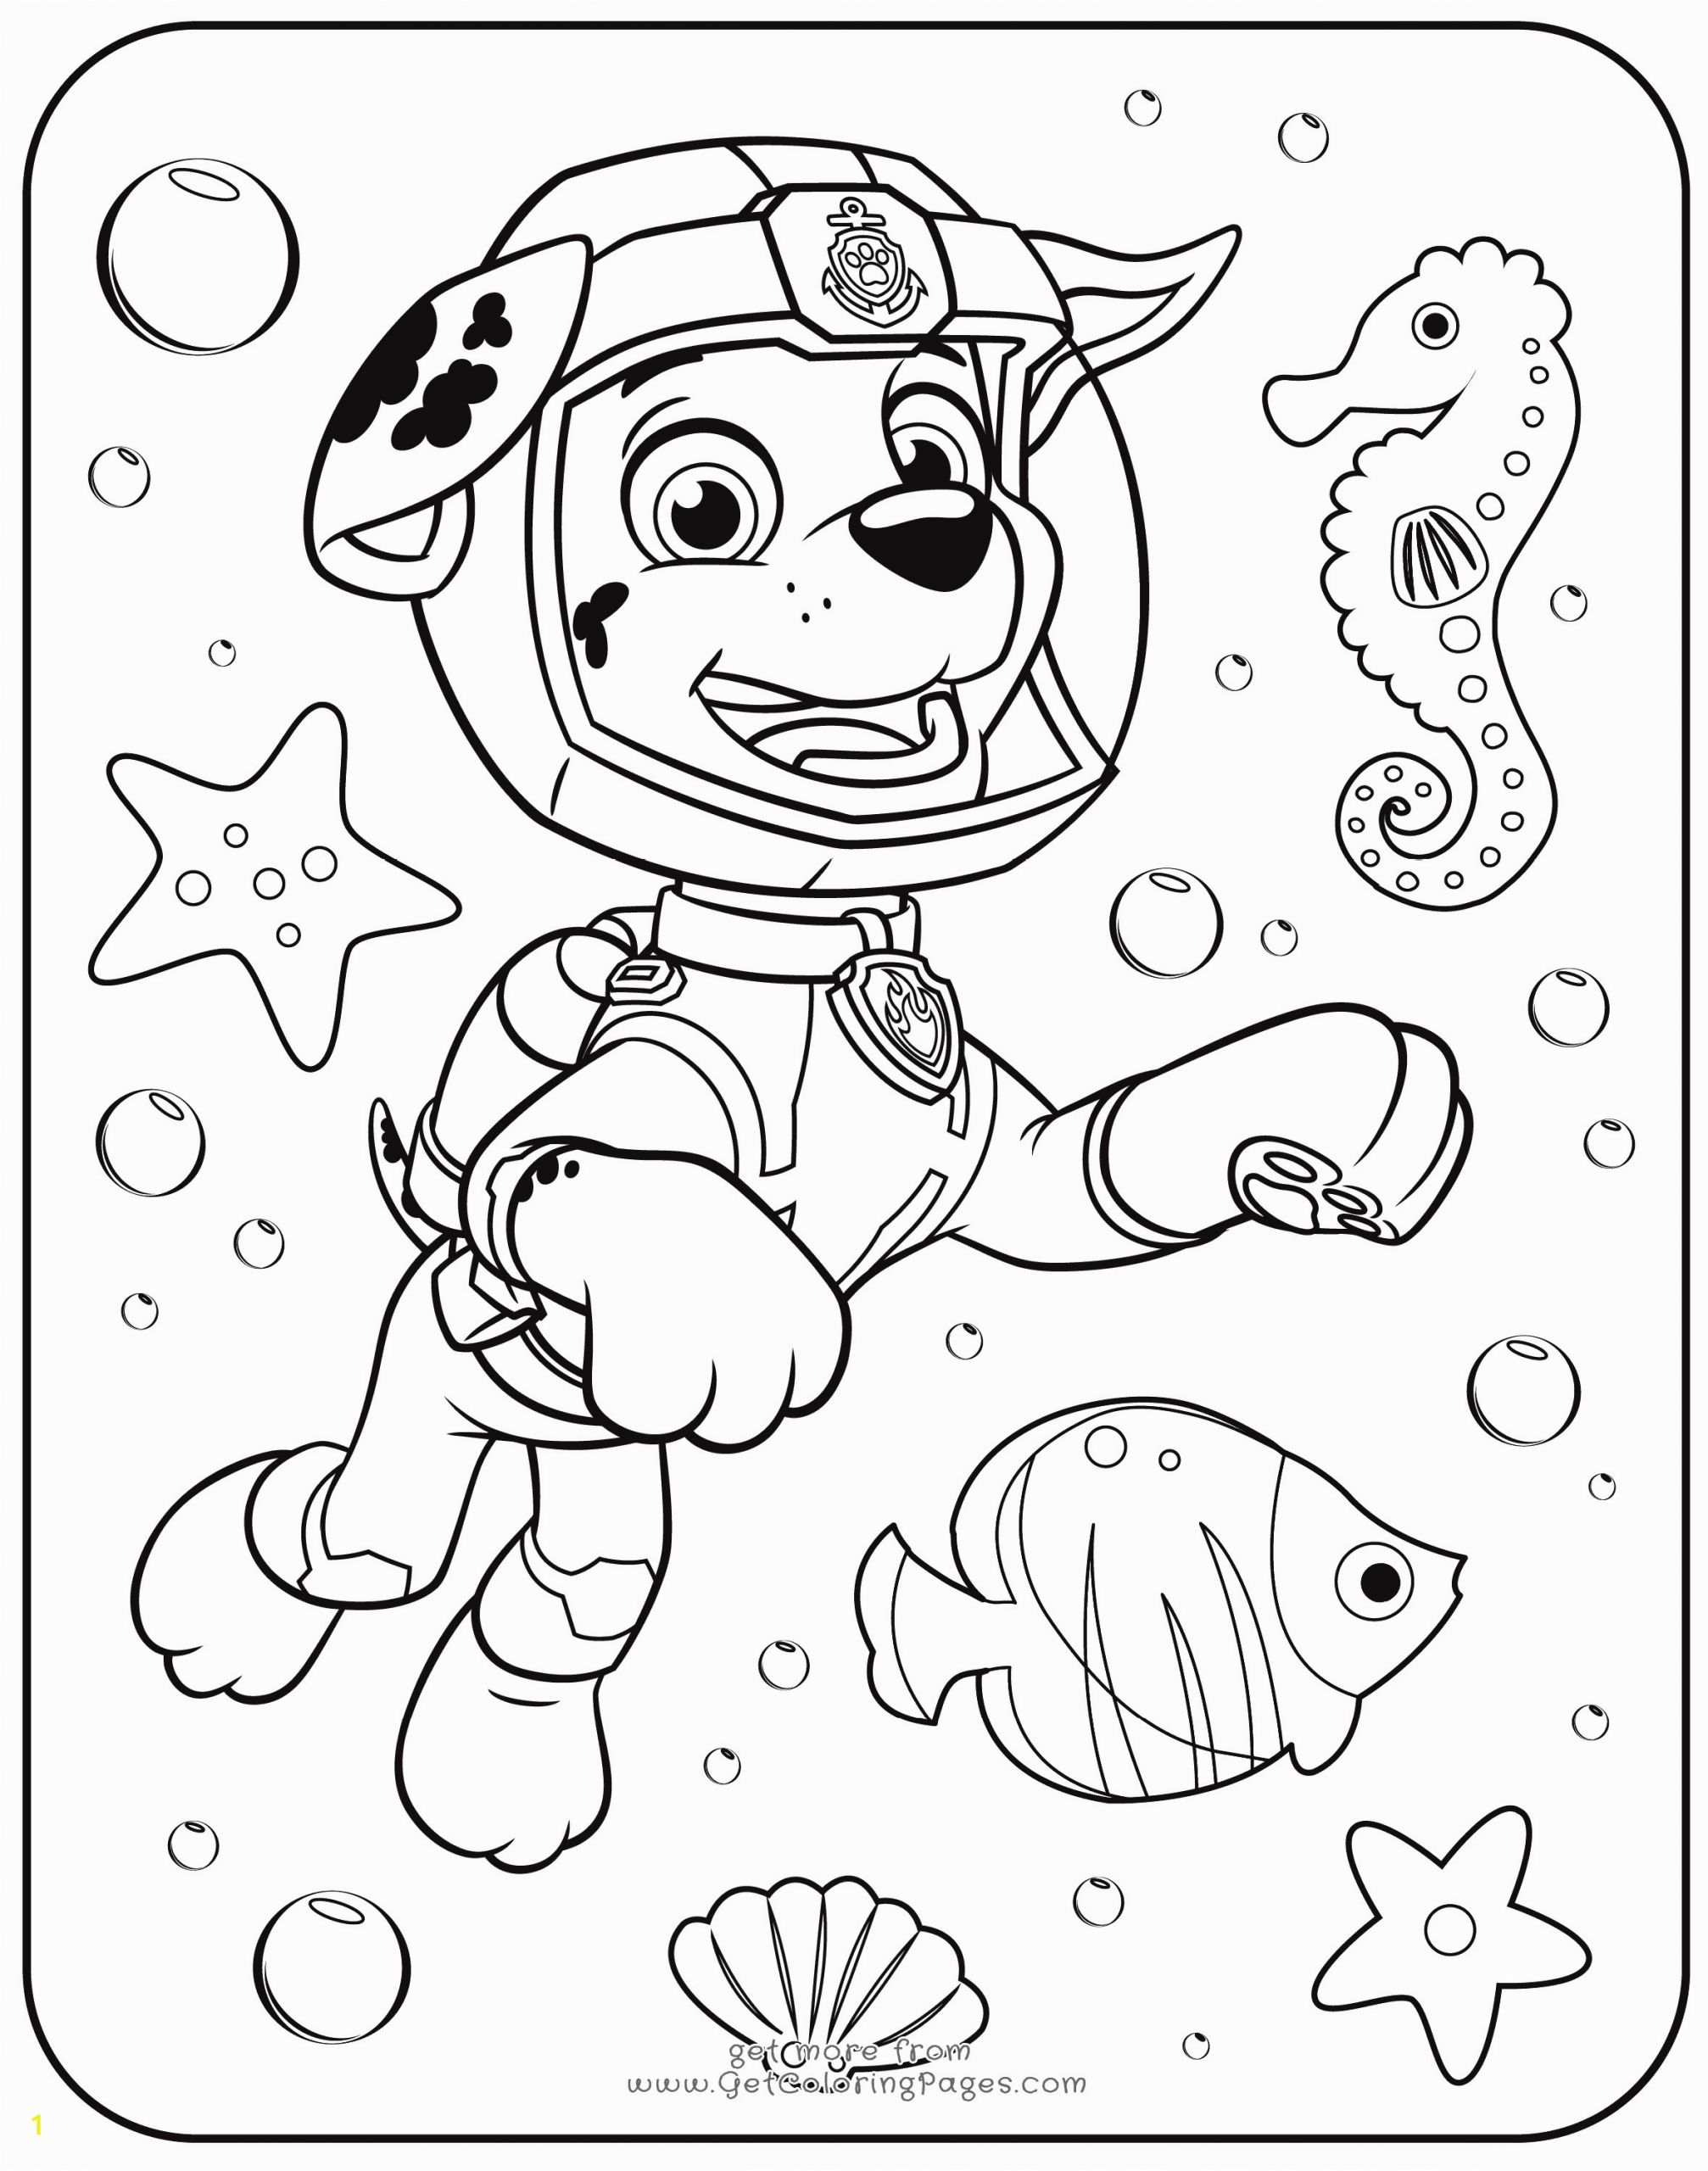 Paw Patrol Ultimate Rescue Coloring Pages Best Coloring Pawtrol Coloringges for Kids at Getdrawings